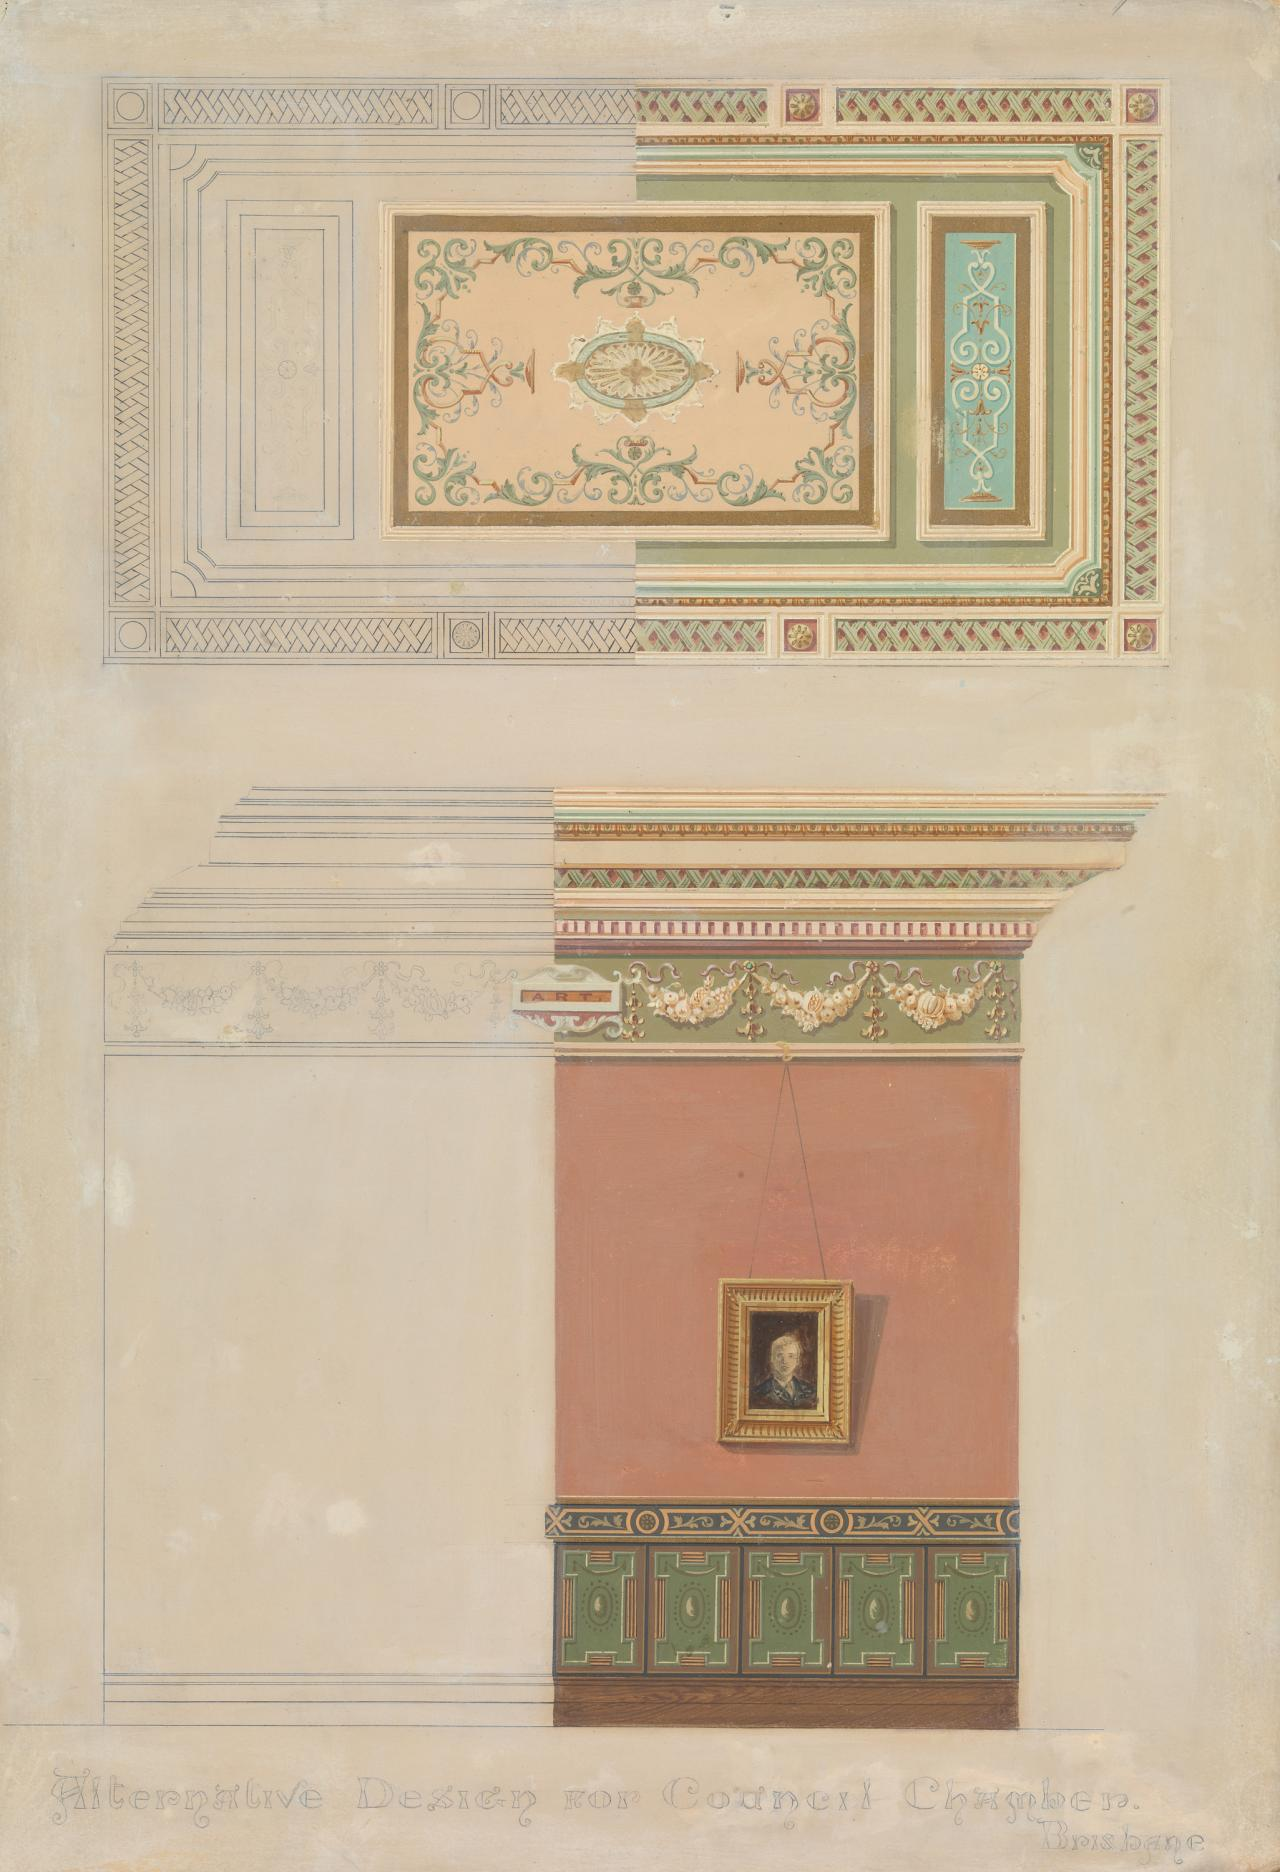 Alternative design for Council Chamber, Brisbane (Treasury Buildings)